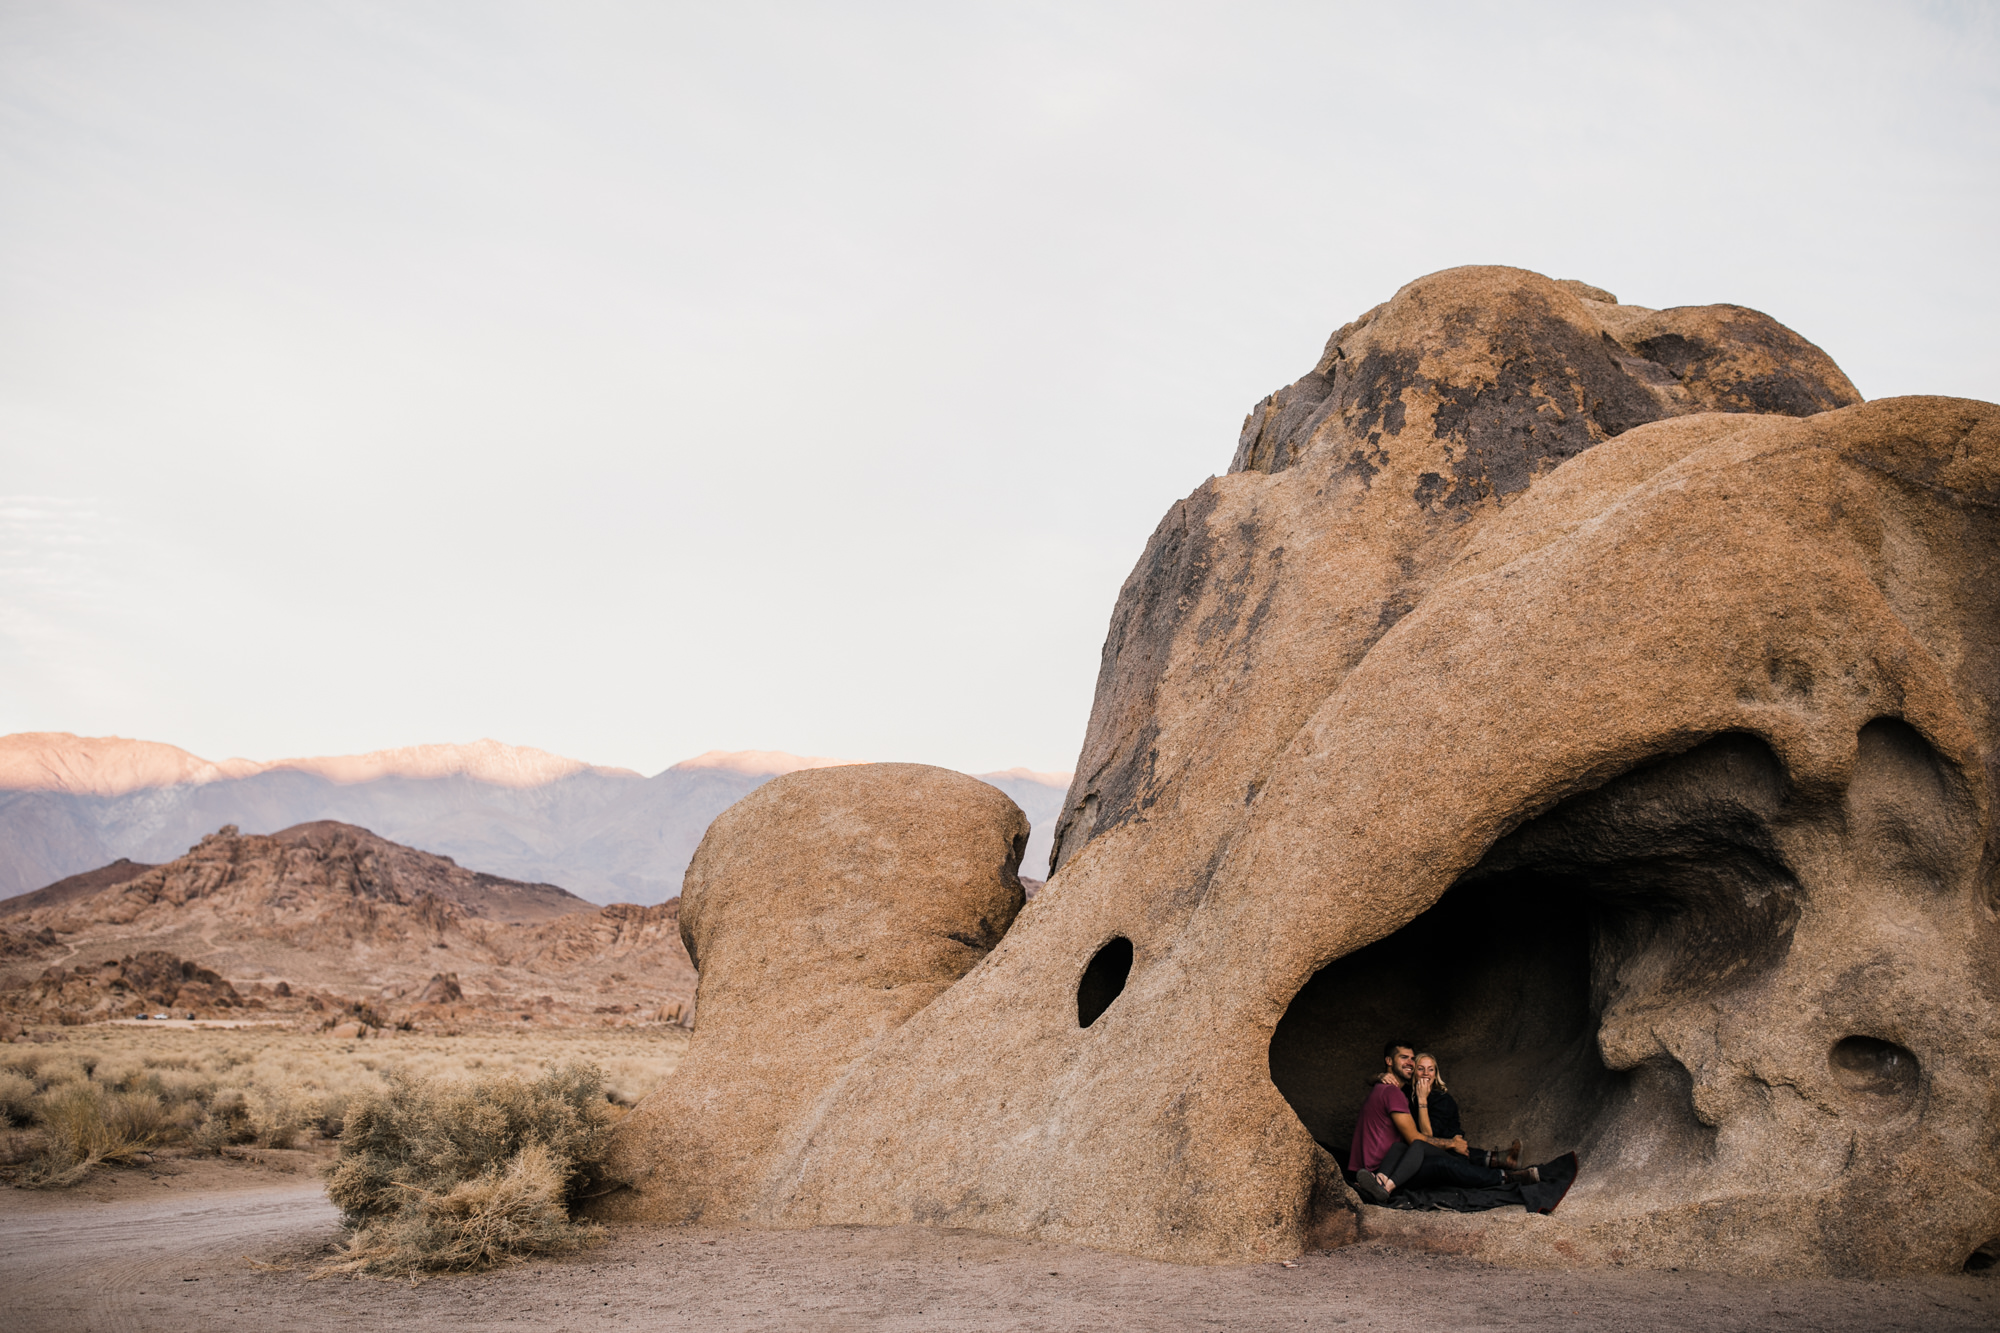 van life engagement session in the mountains | destination engagement photo inspiration | utah adventure elopement photographers | the hearnes adventure photography | www.thehearnes.com